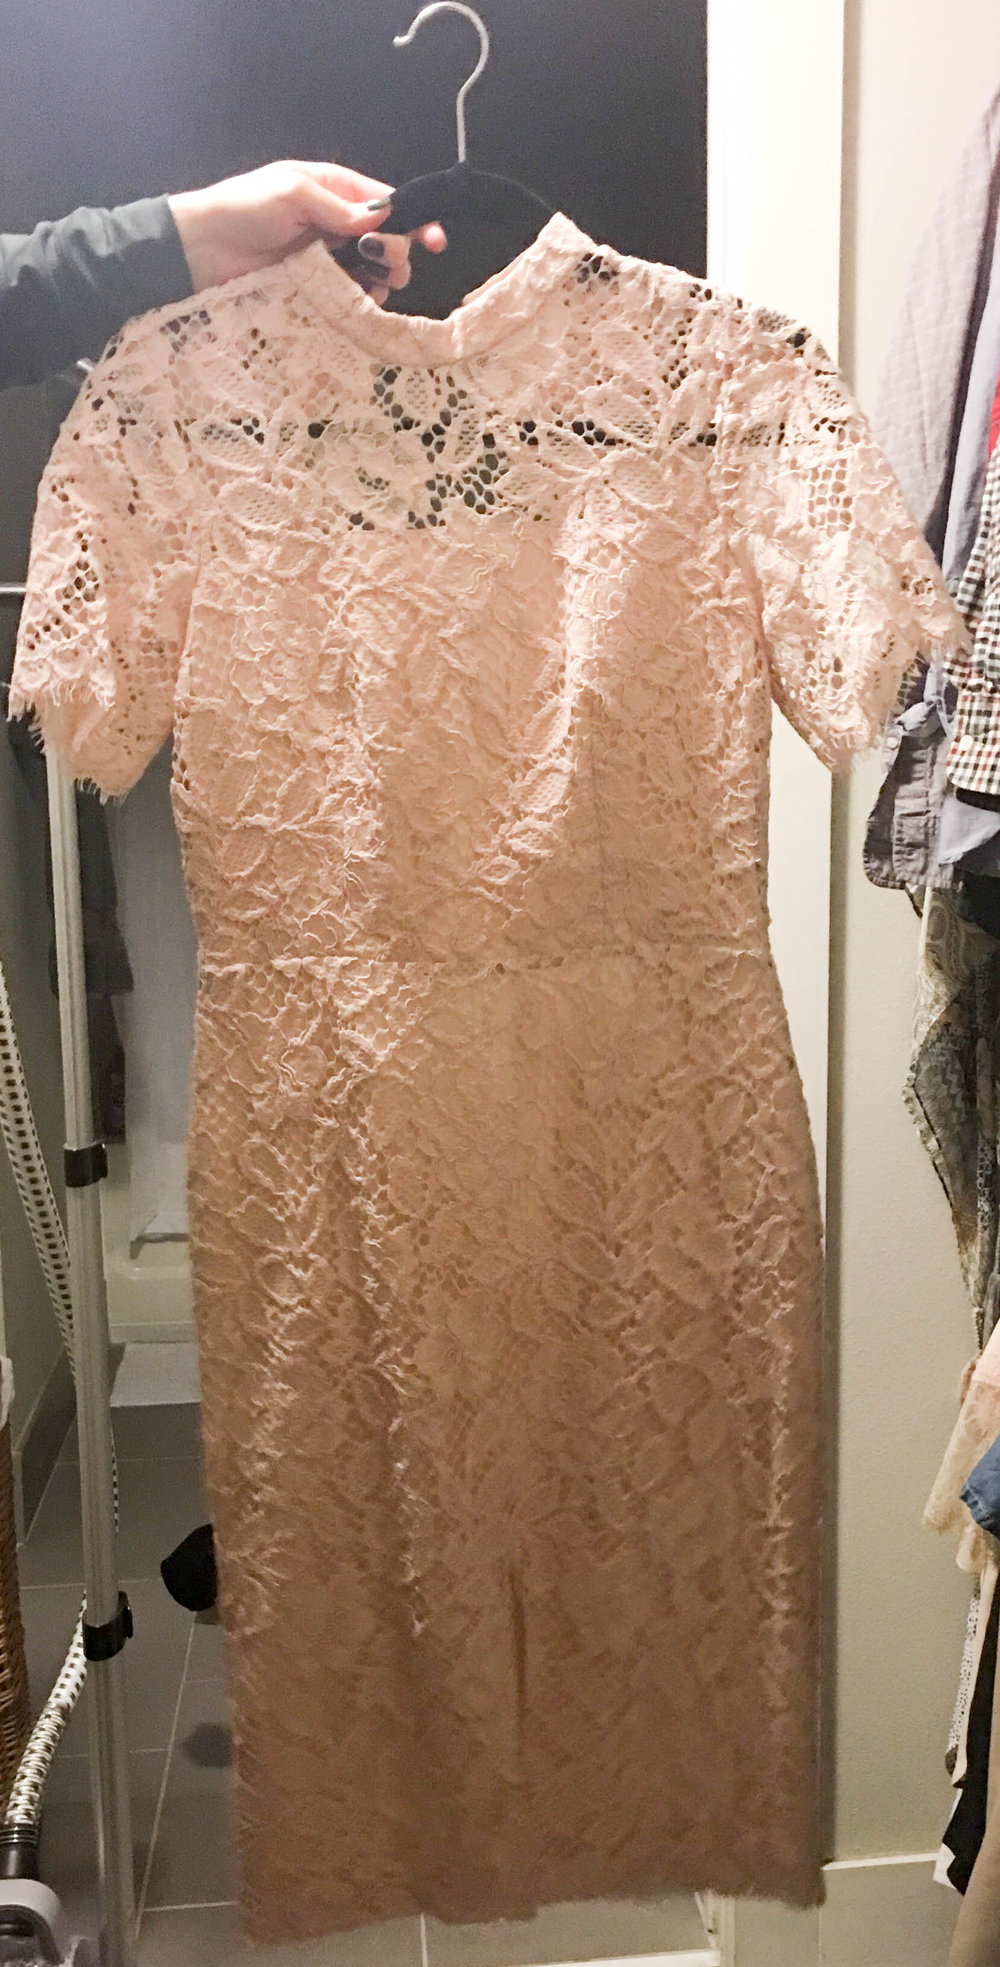 PInk%2FWhite Lace Dress with Collar Edited.jpg